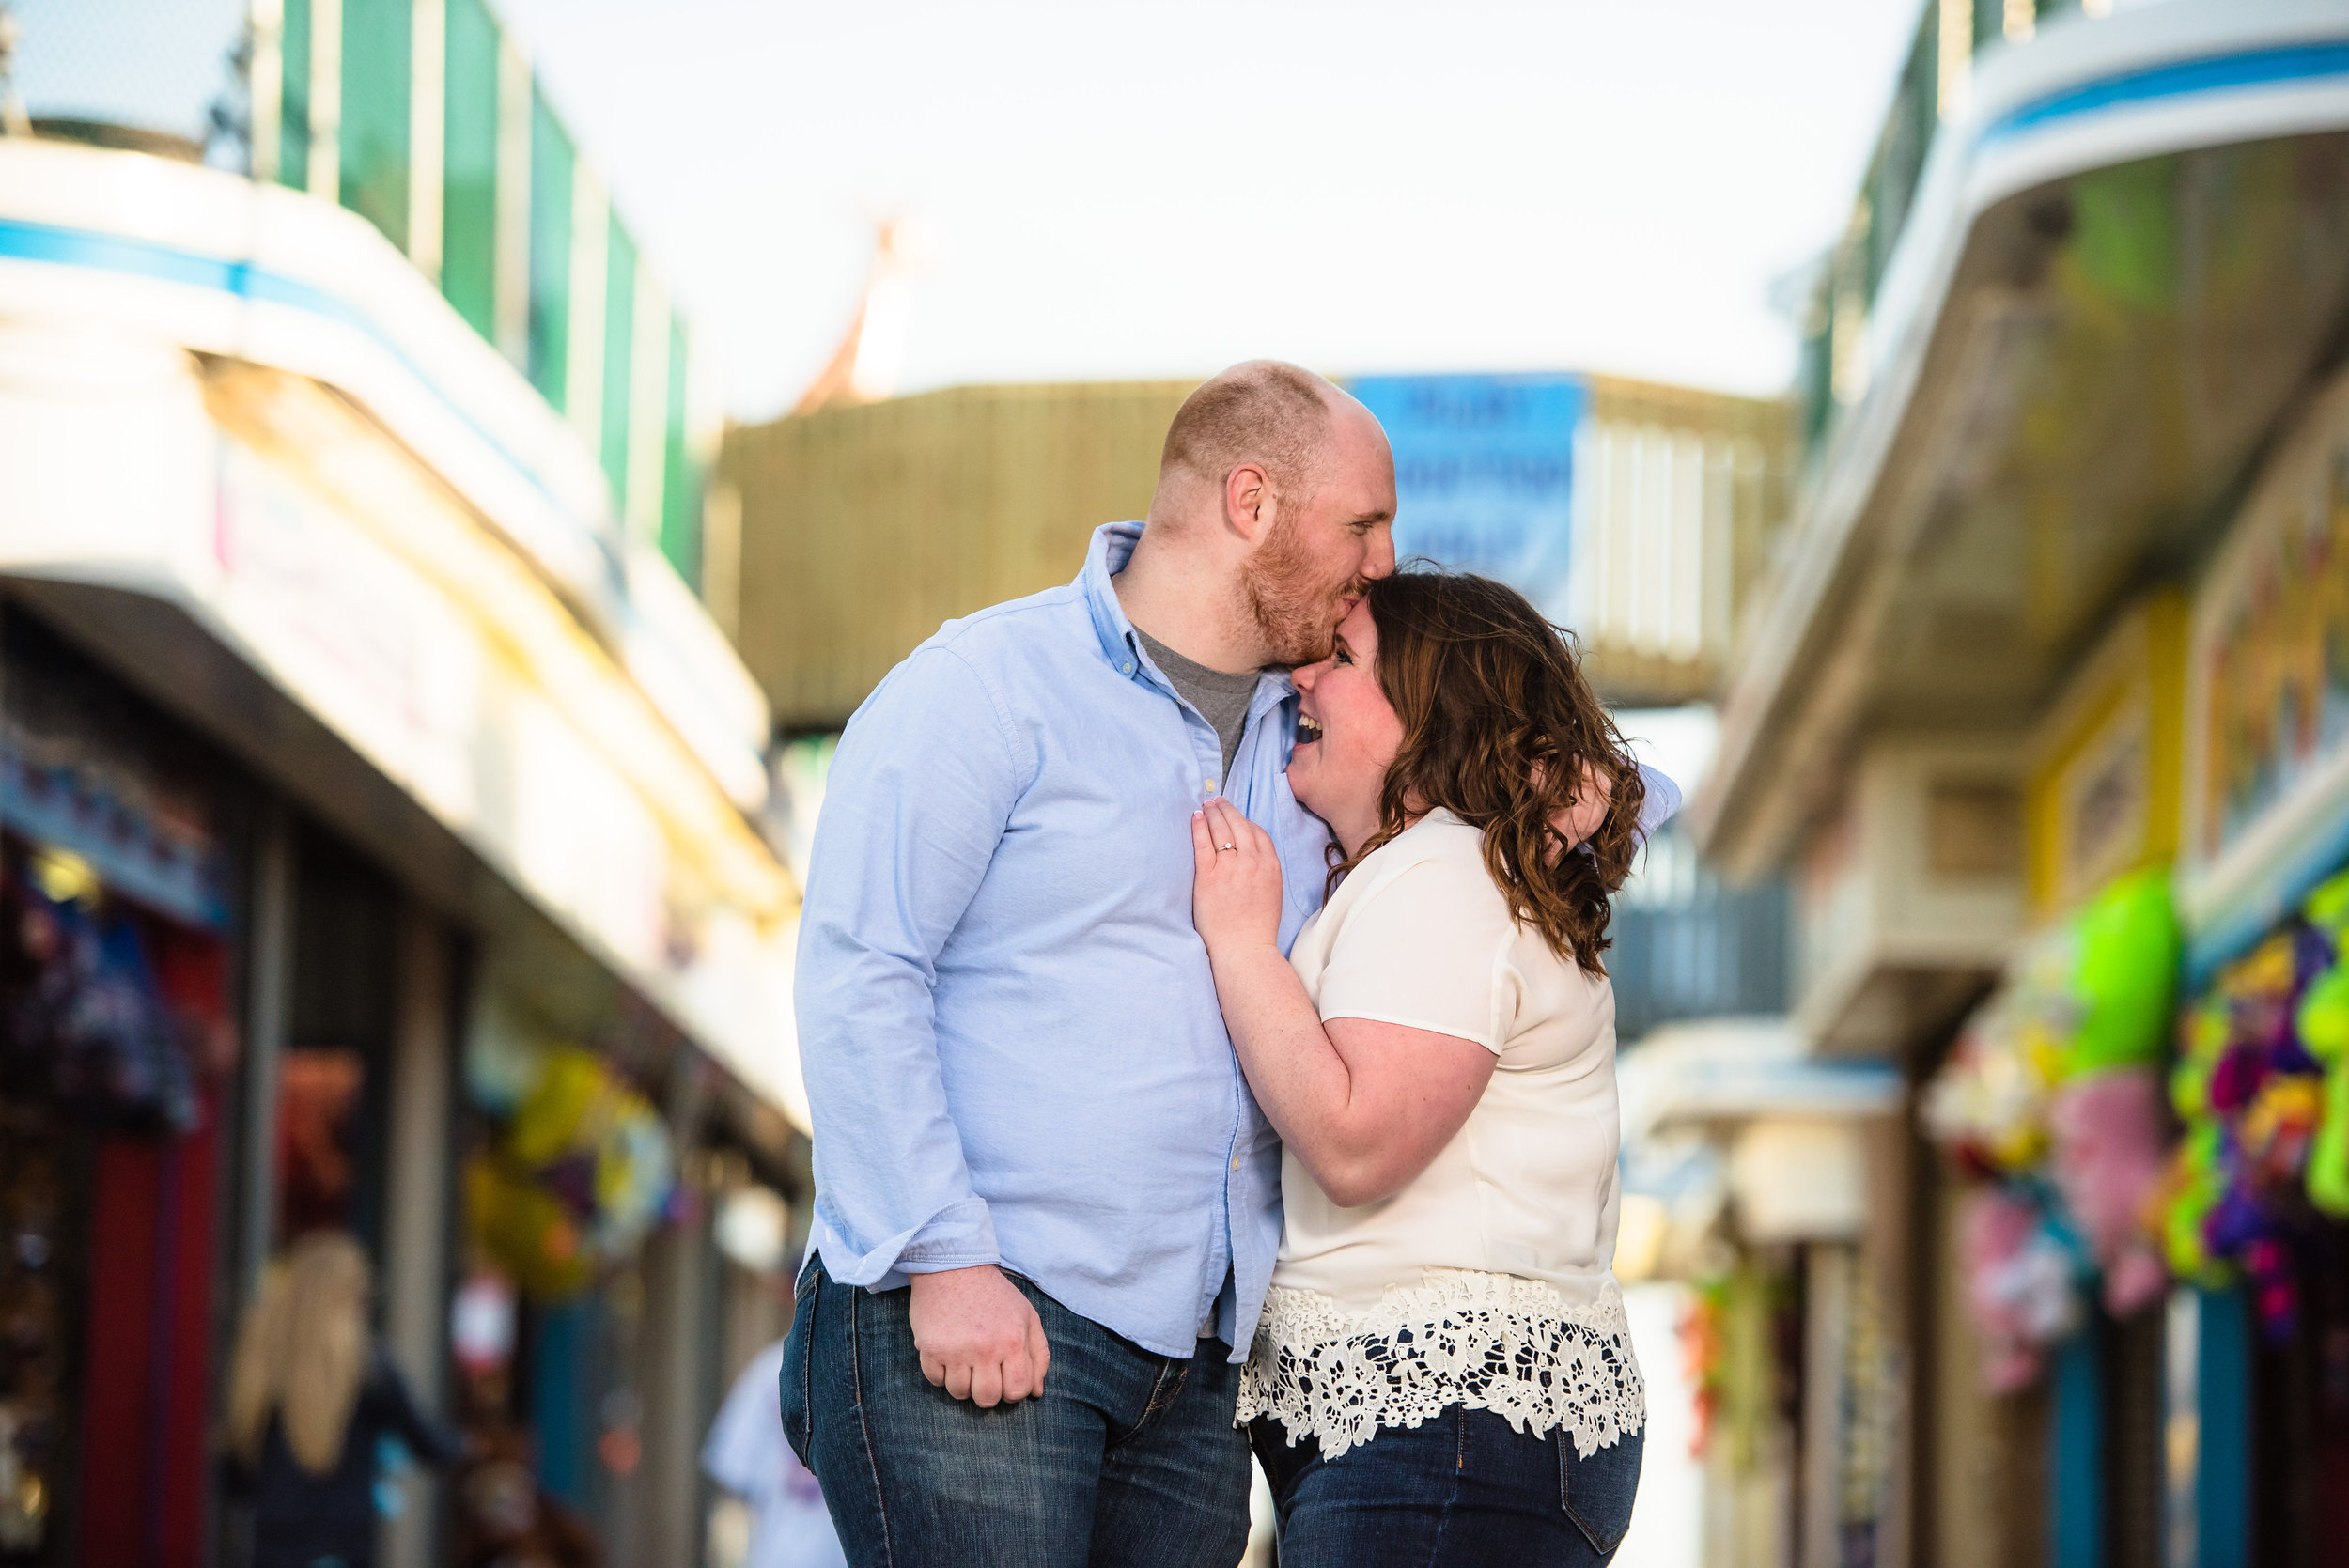 Seaside, NJ Boardwalk & Beach Engagement Photos Jake & Jessica 1